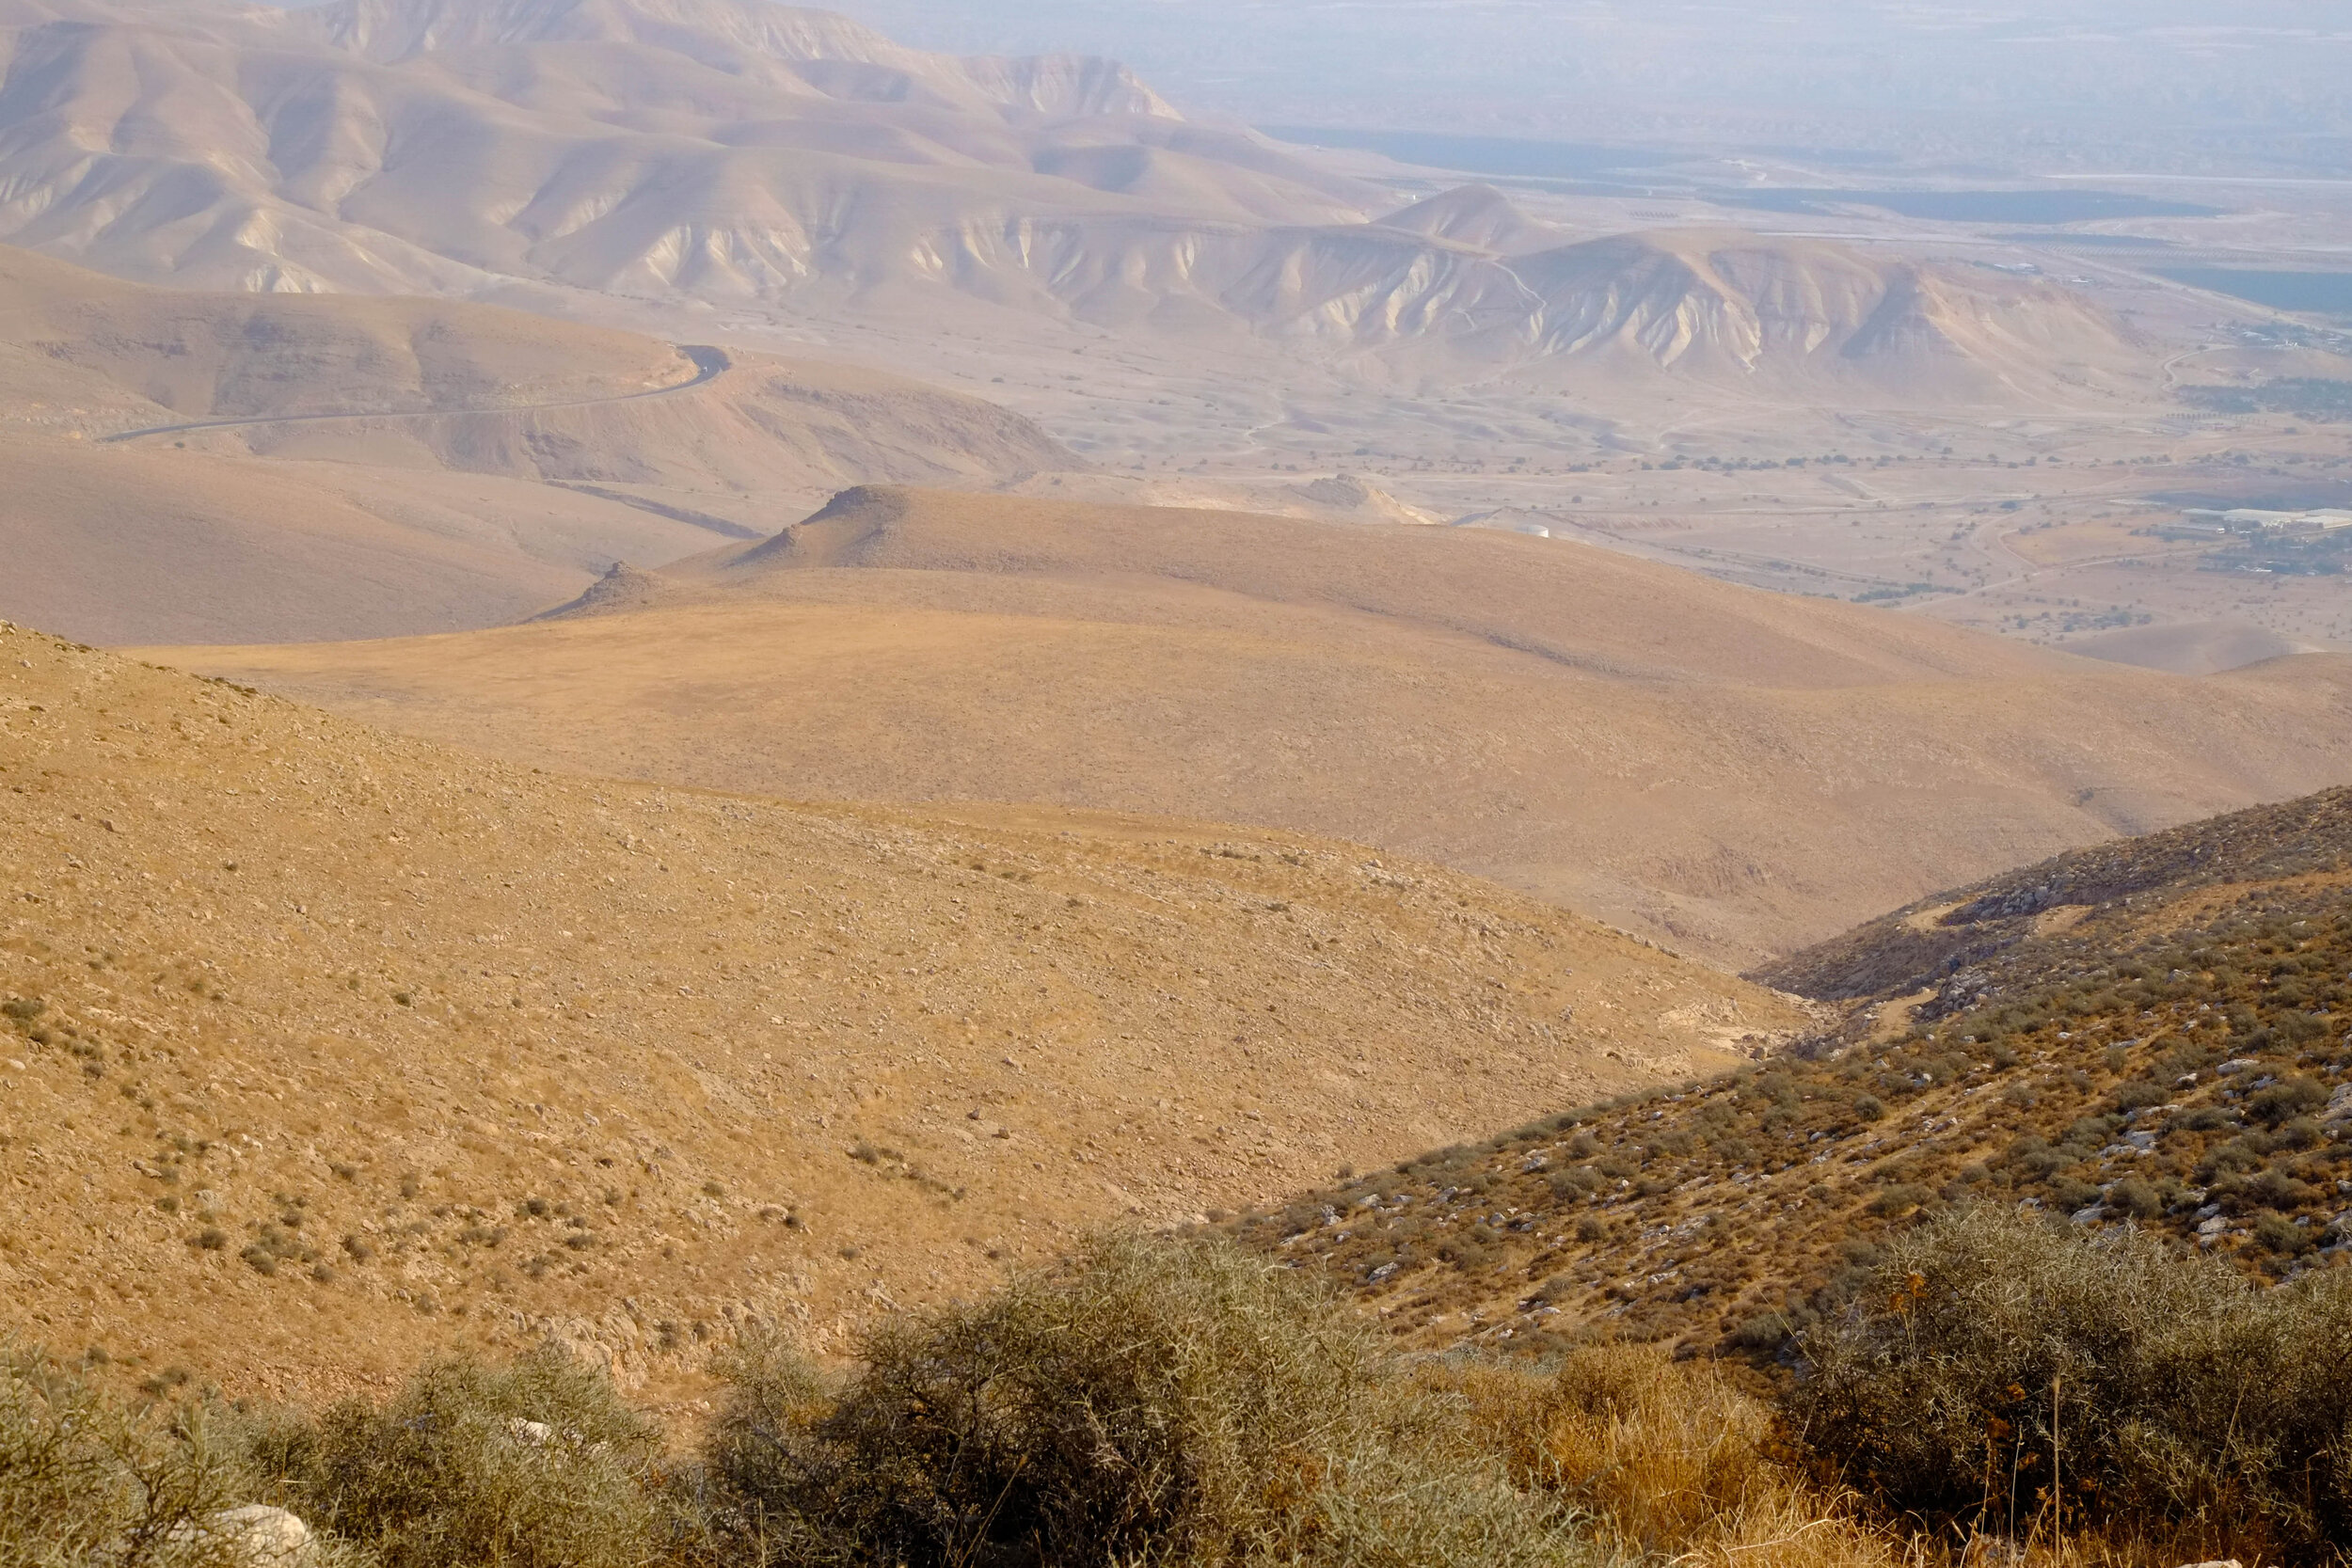 across the wadi, there is nothing for the herds to eat